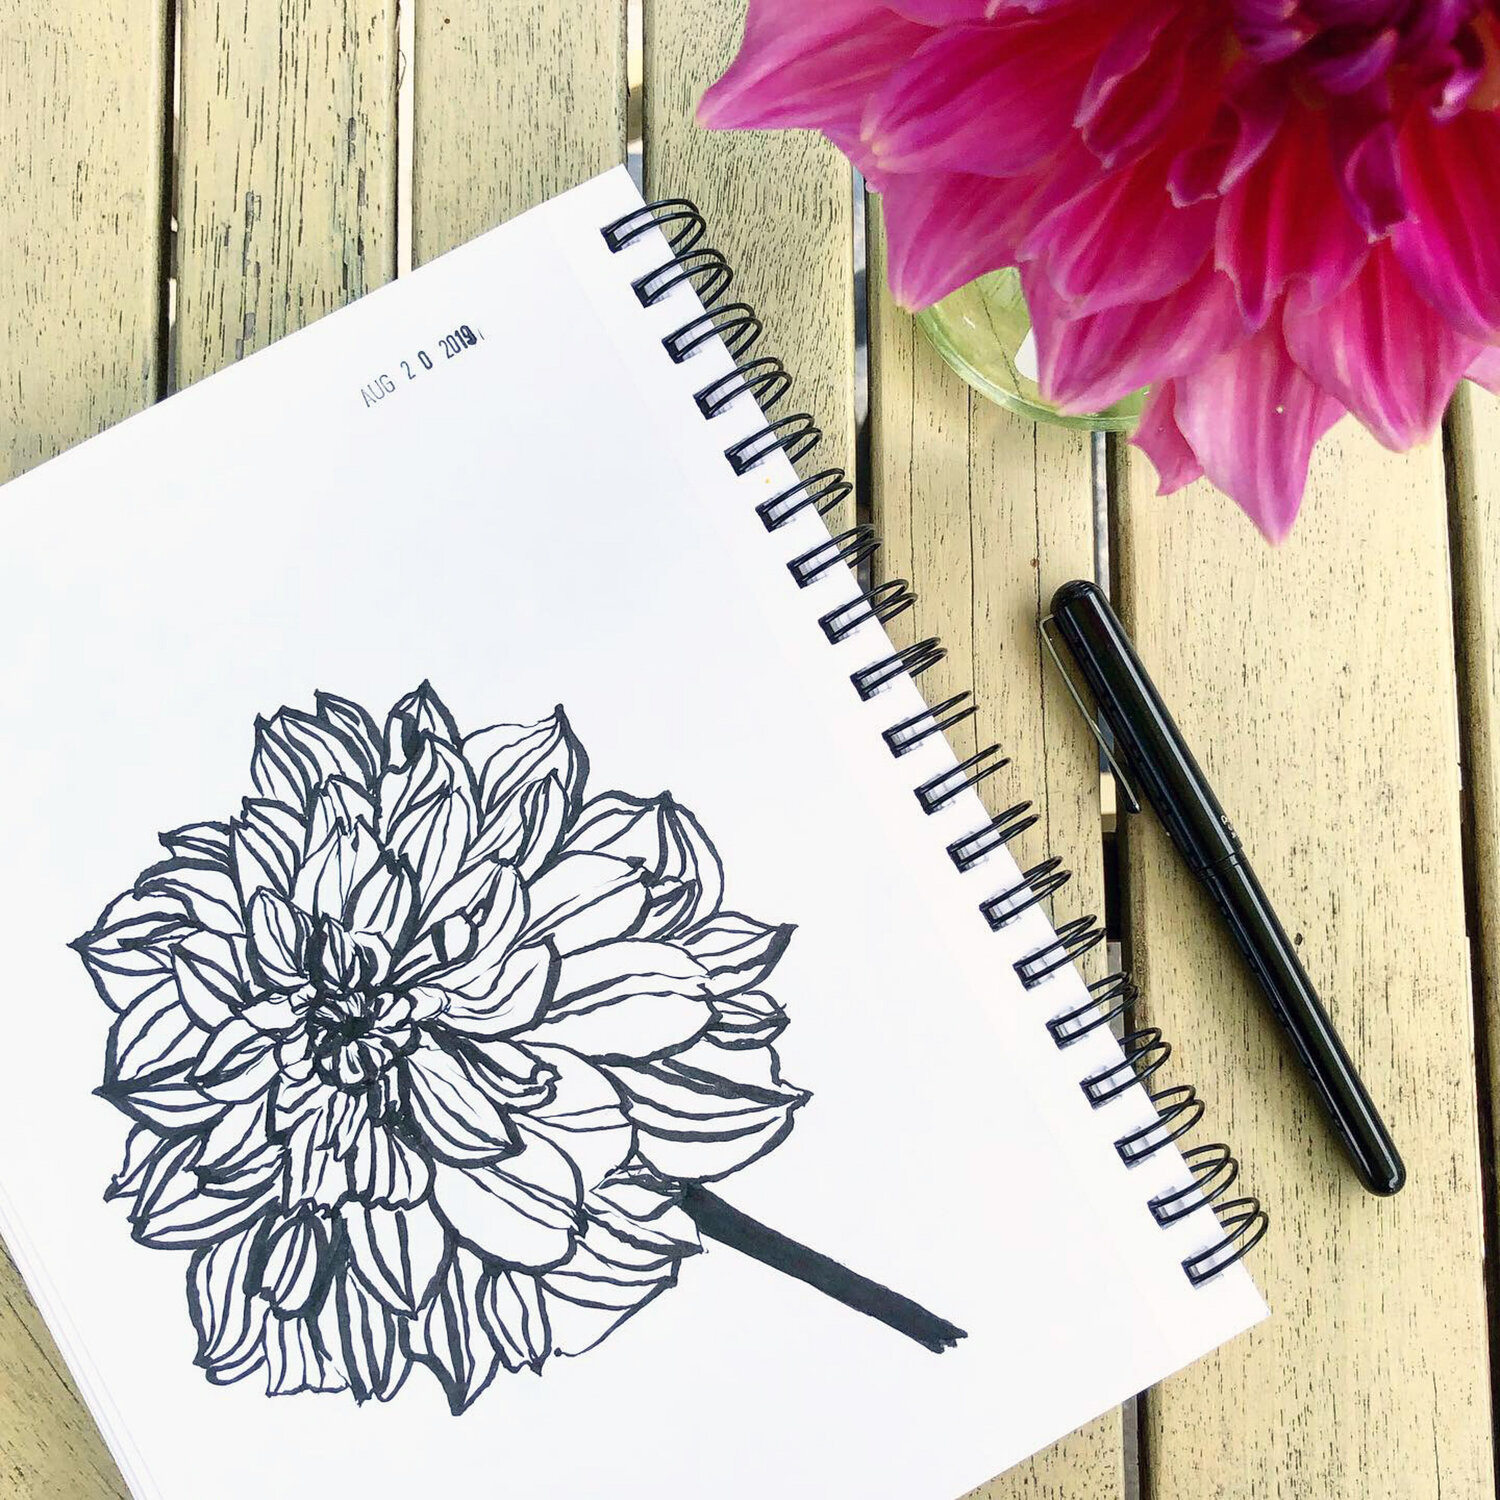 Sketching Otto's Thrill Dahlia with a Brush Pen